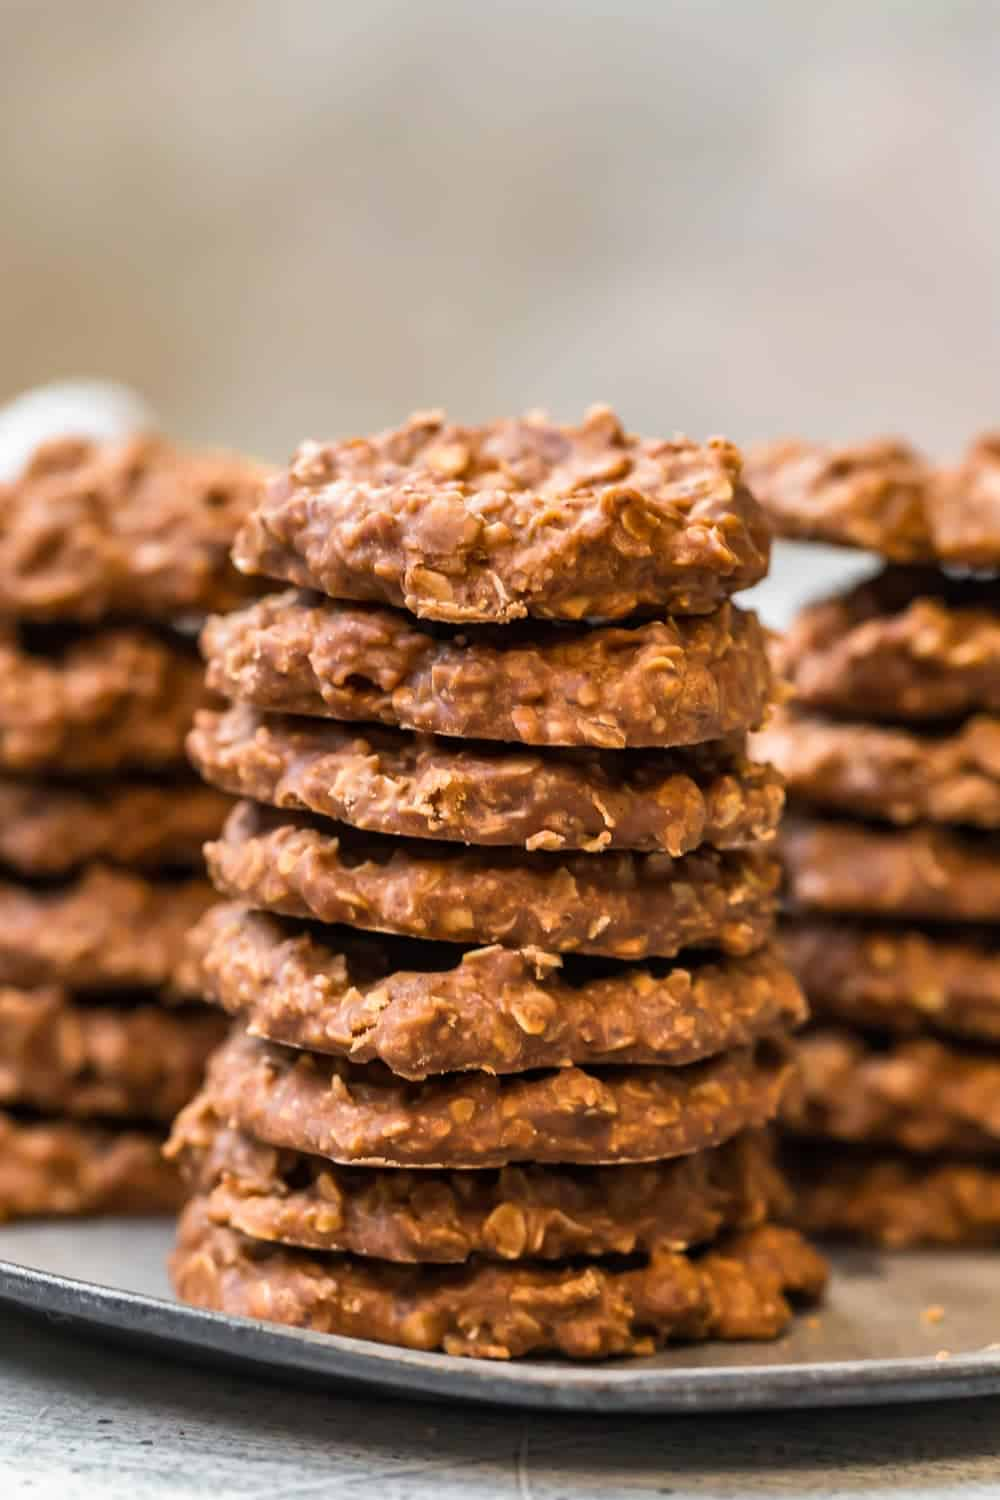 A stack of chocolate no bake cookies